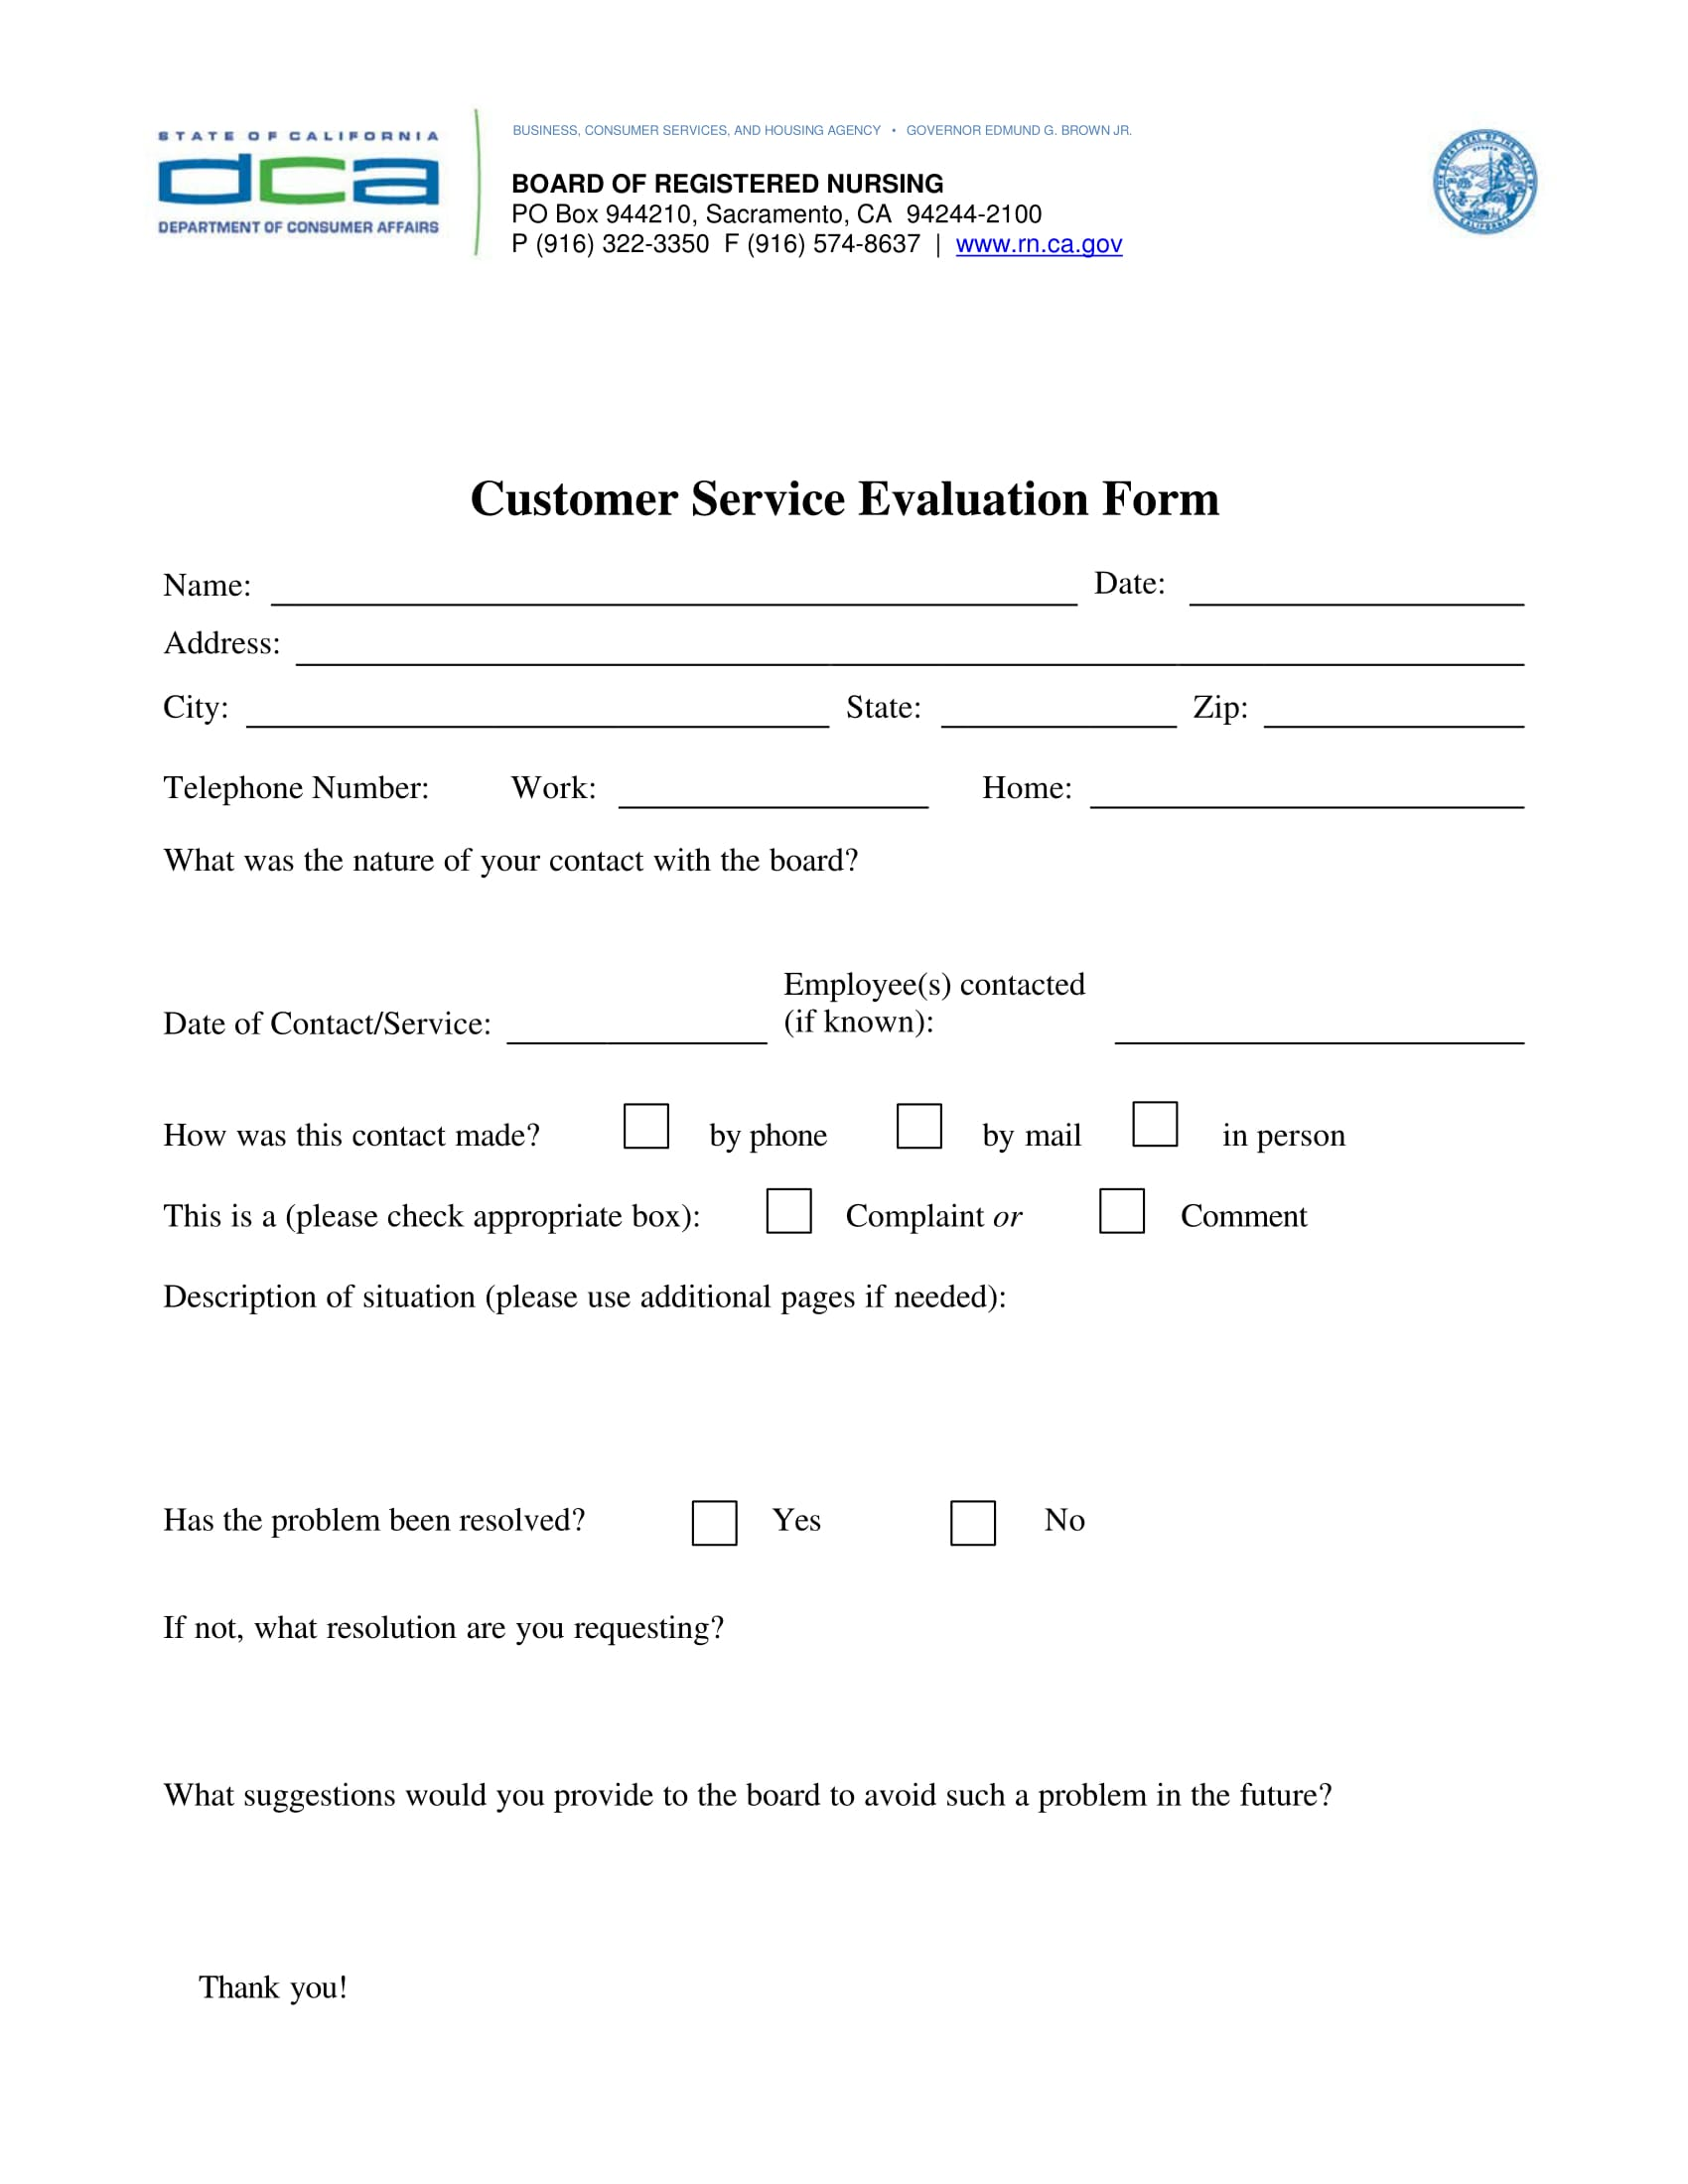 consumer customer service evaluation form 1